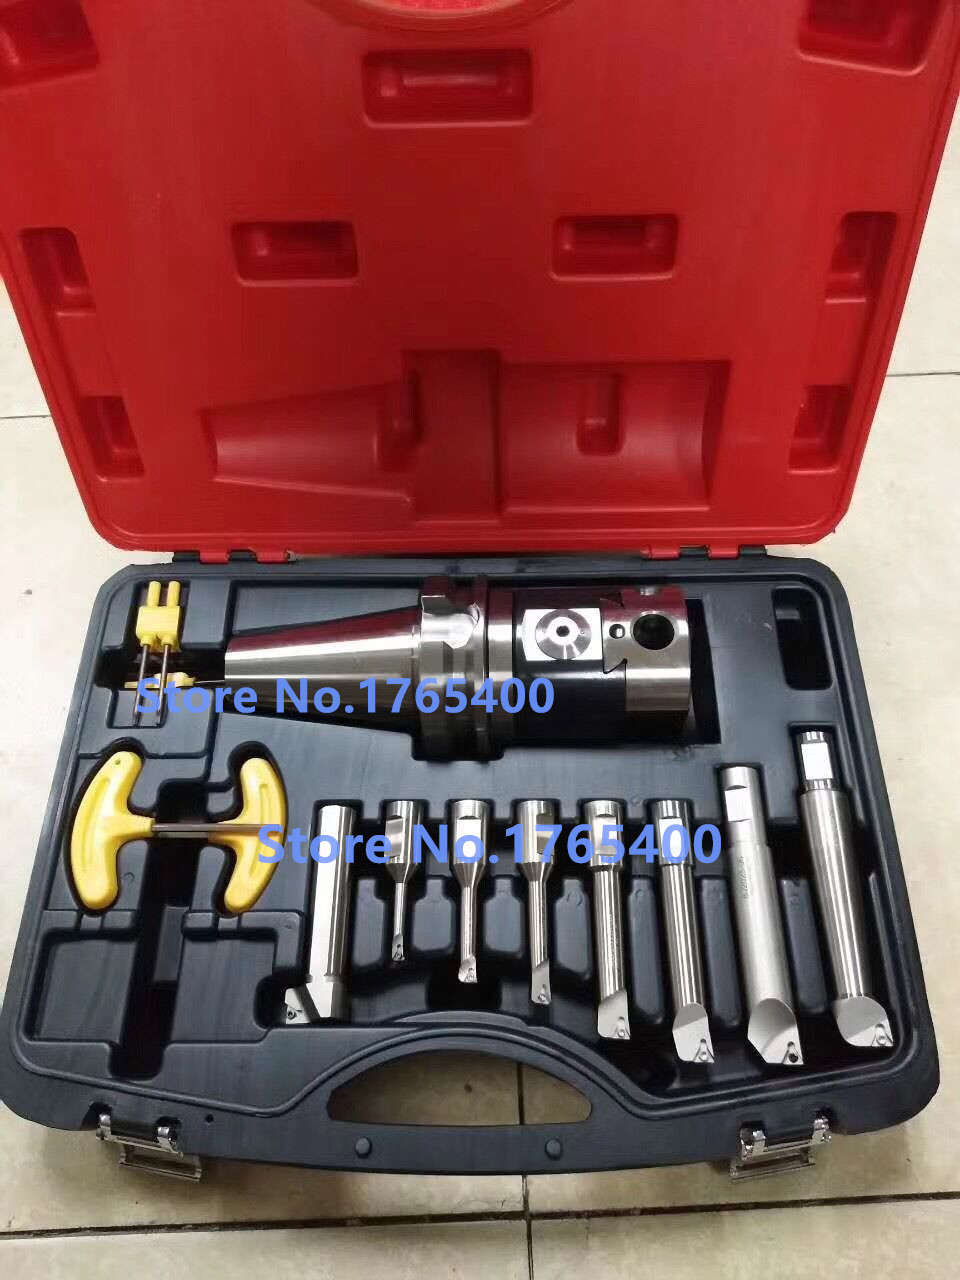 Precision NBH2084 8-280mm Boring Head System+BT40 M16 Holder +8pcs 20mm Boring Bar Boring rang 8-280mm+30pcs boring inserts bt40 bsb90 180 handle thick knife rod bsb 90 degree coarse boring bar tool holder boring holder with square boring bit